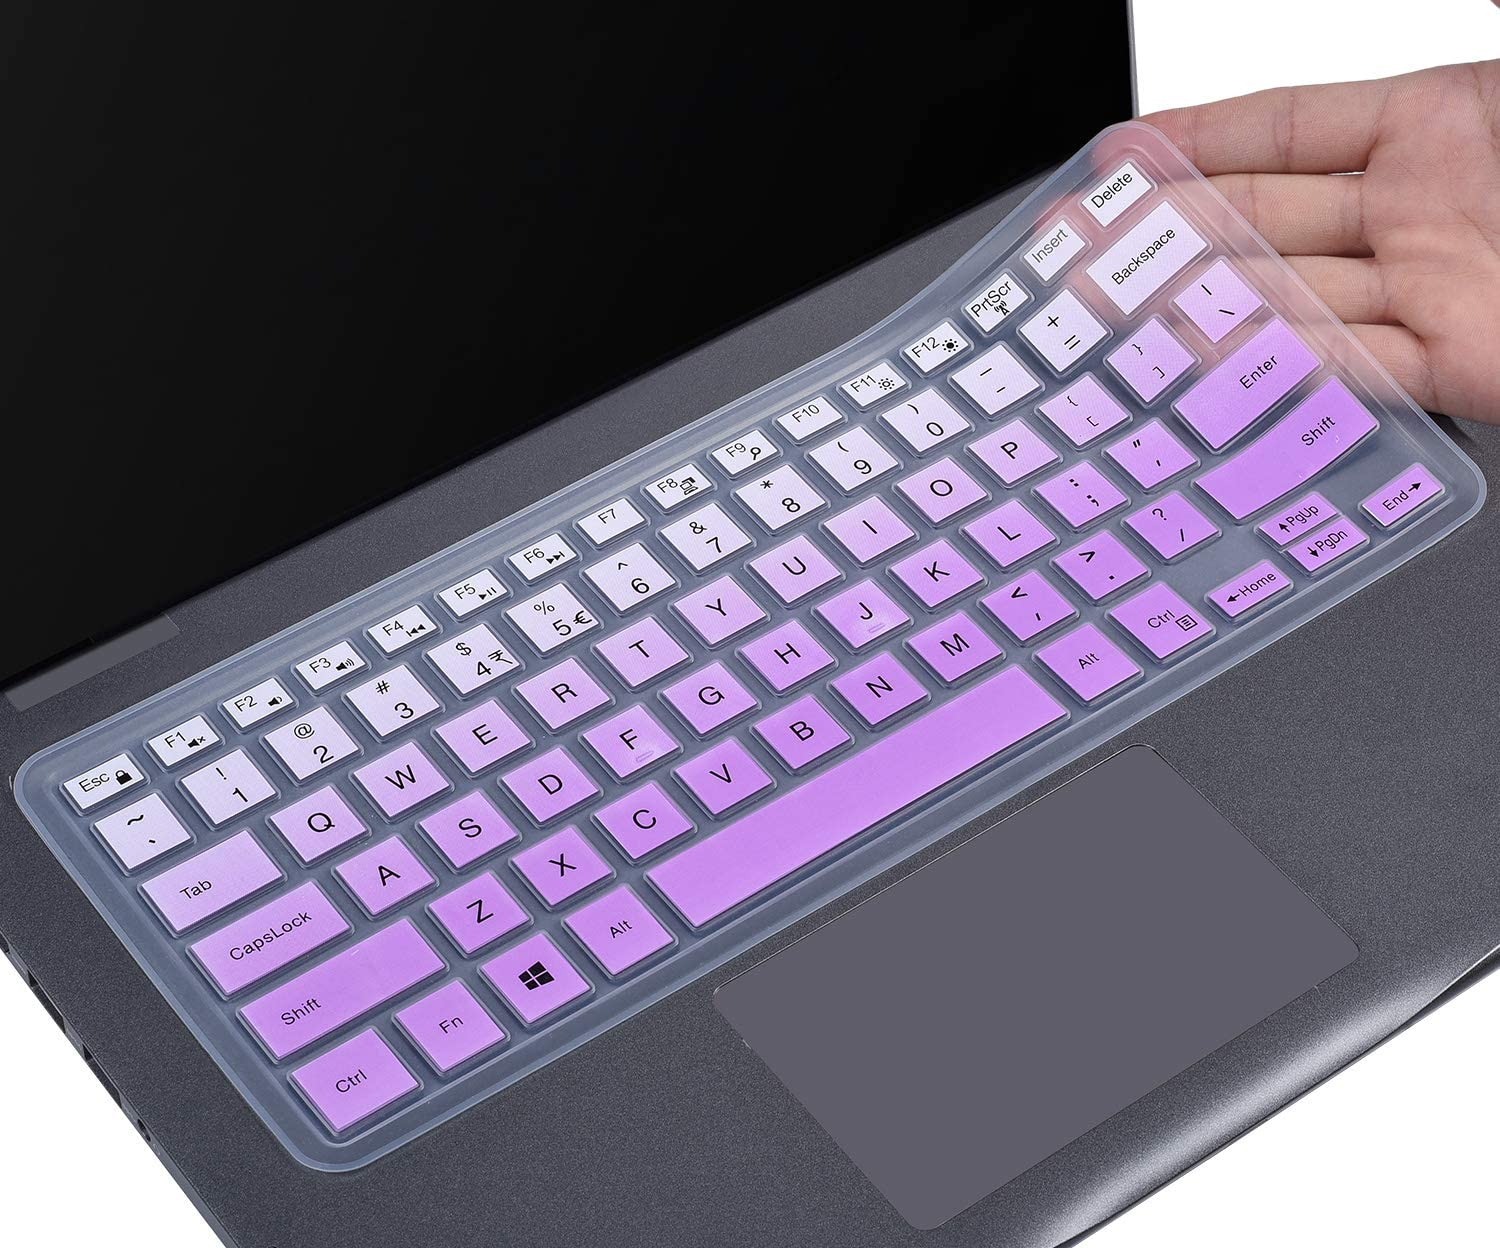 "Keyboard Cover for Dell Inspiron 14 5481 5482 5485 5491/ Dell Inspiron 13 5368 5378 5370 5379 7386 7373 7375 7368 7378 7380/15.6"" Dell Inspiron 15 i5568 i5578 5579 5585 7570 7573 7569 7579 7580 7586"